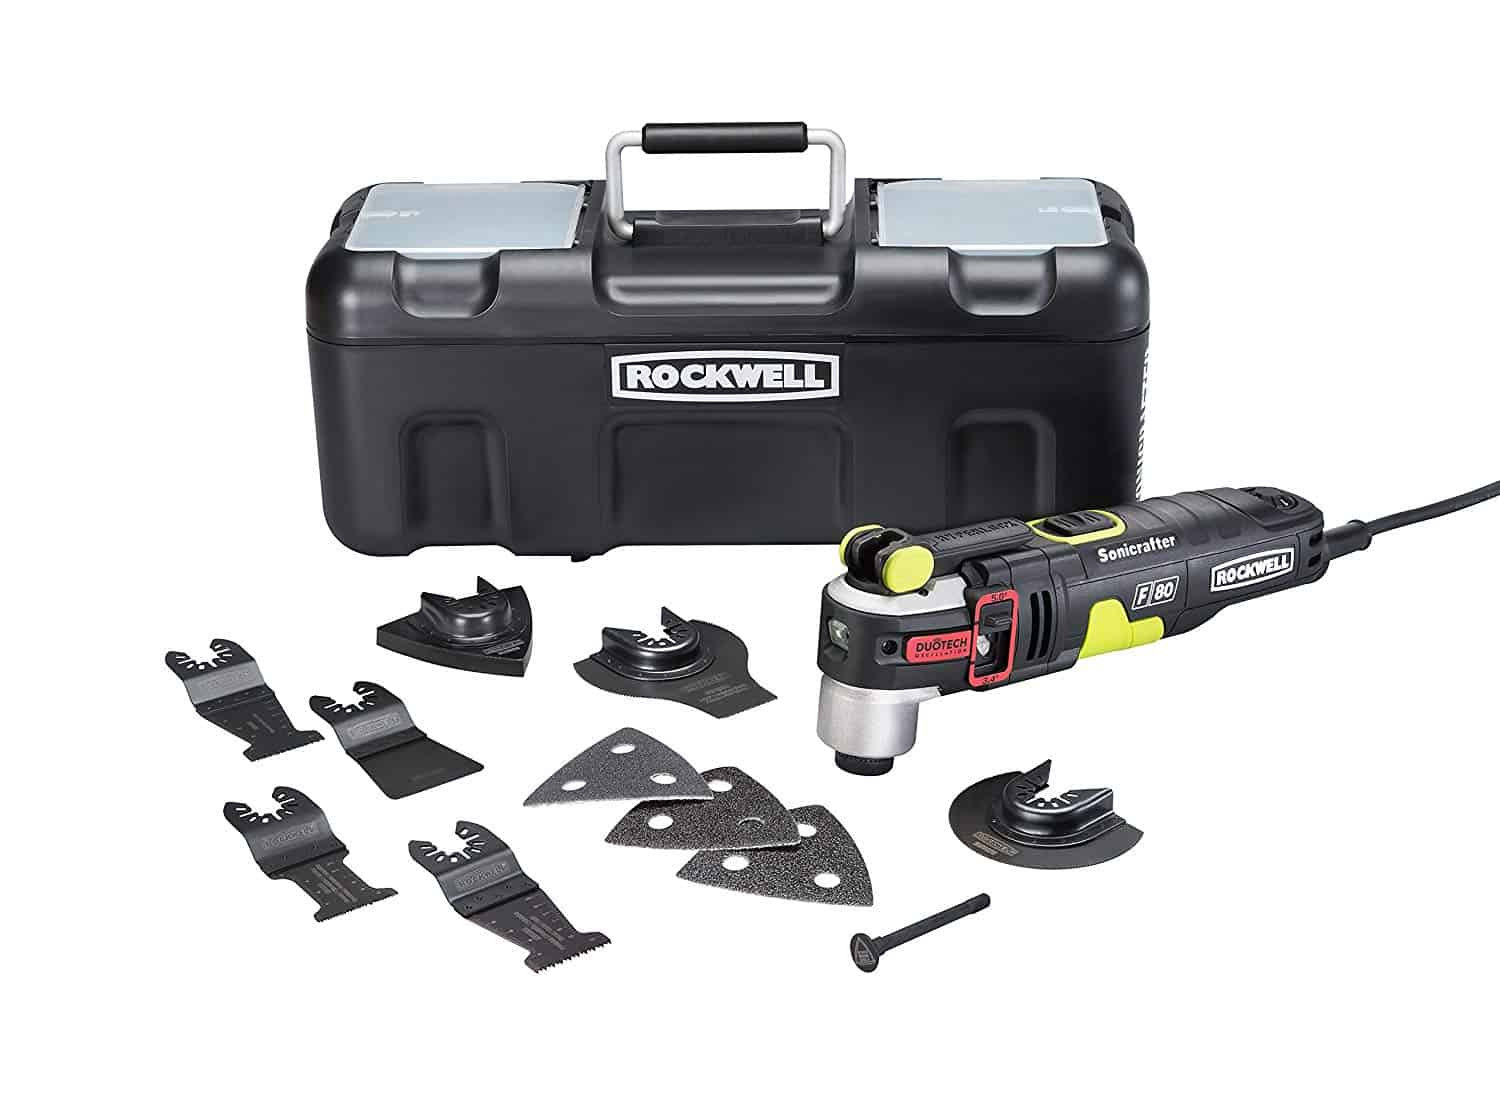 Rockwell RK5151K 4.2 Amp Sonicrafter F80 Oscillating MultiTool